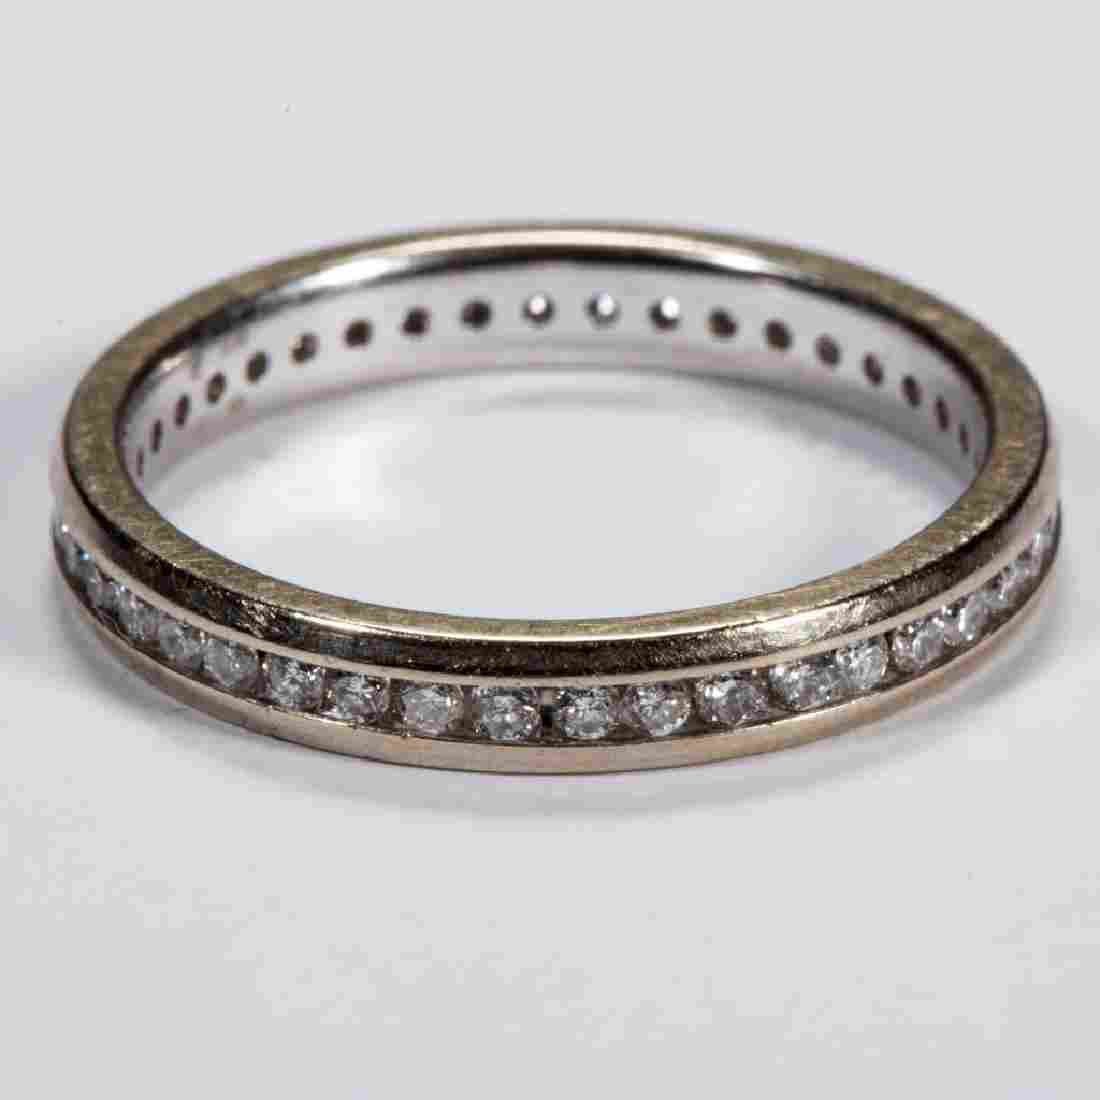 VINTAGE 14K GOLD AND DIAMOND LADY'S BAND